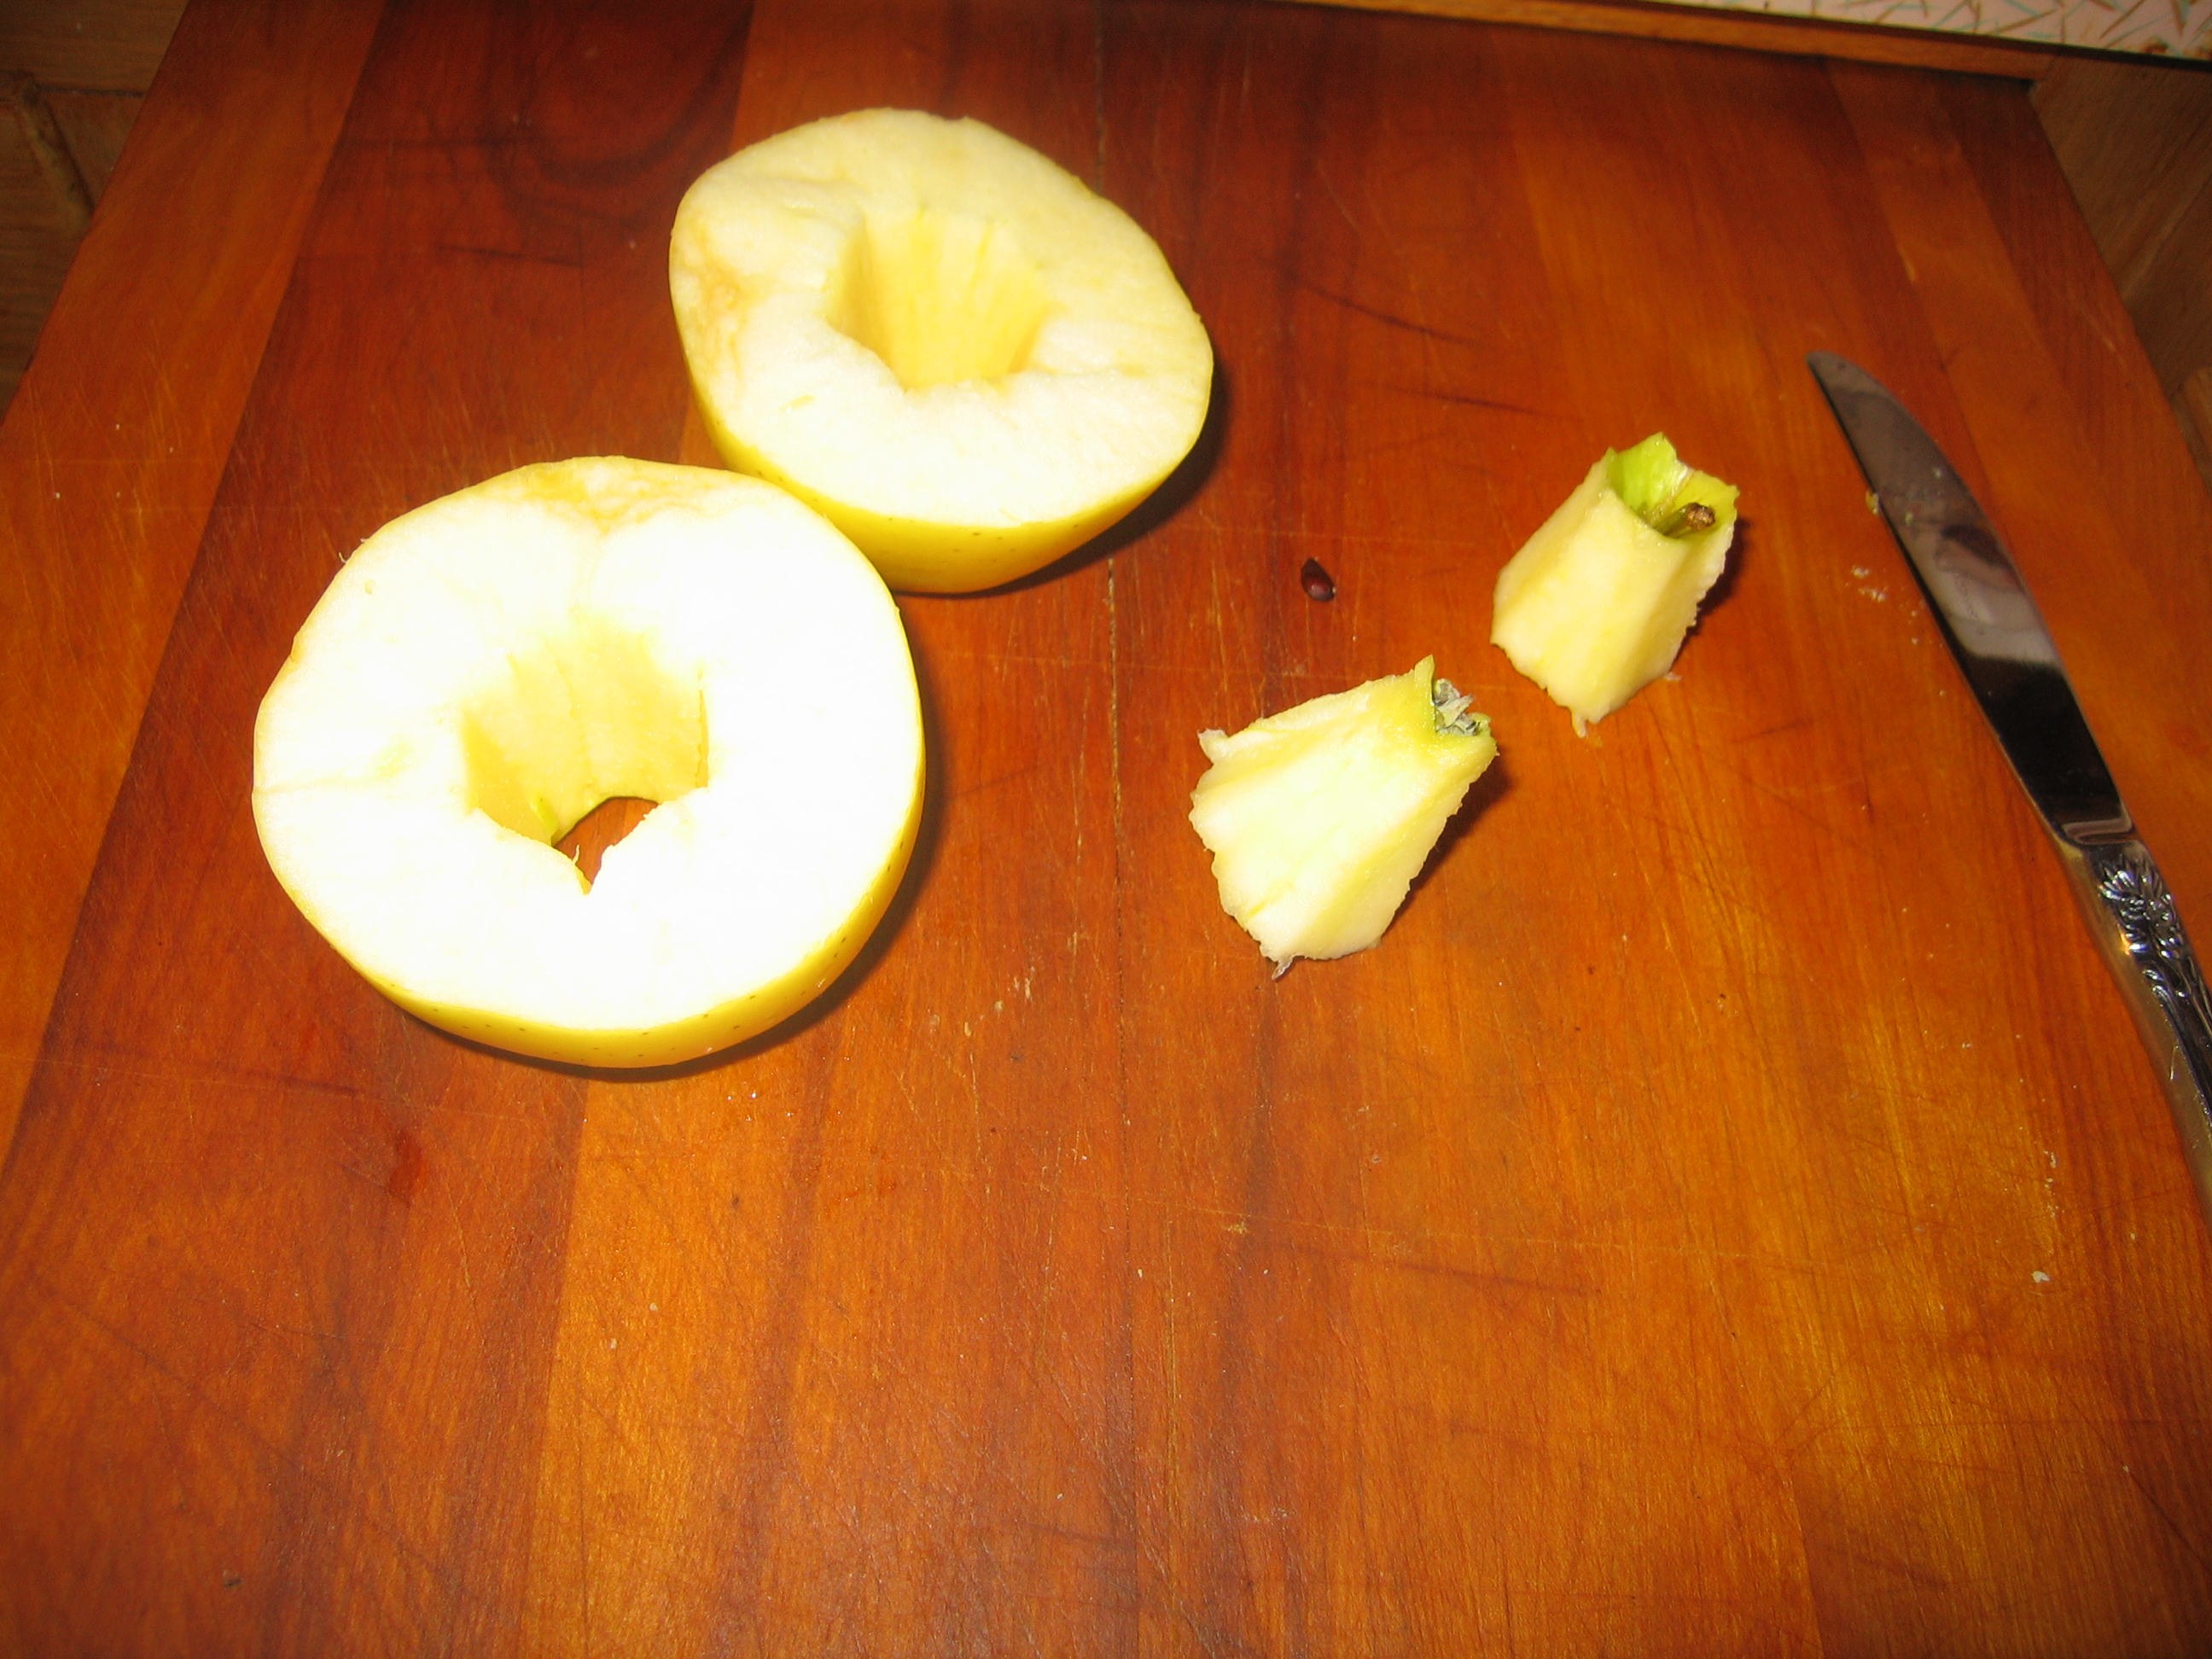 How to core an apple (the fun way!)